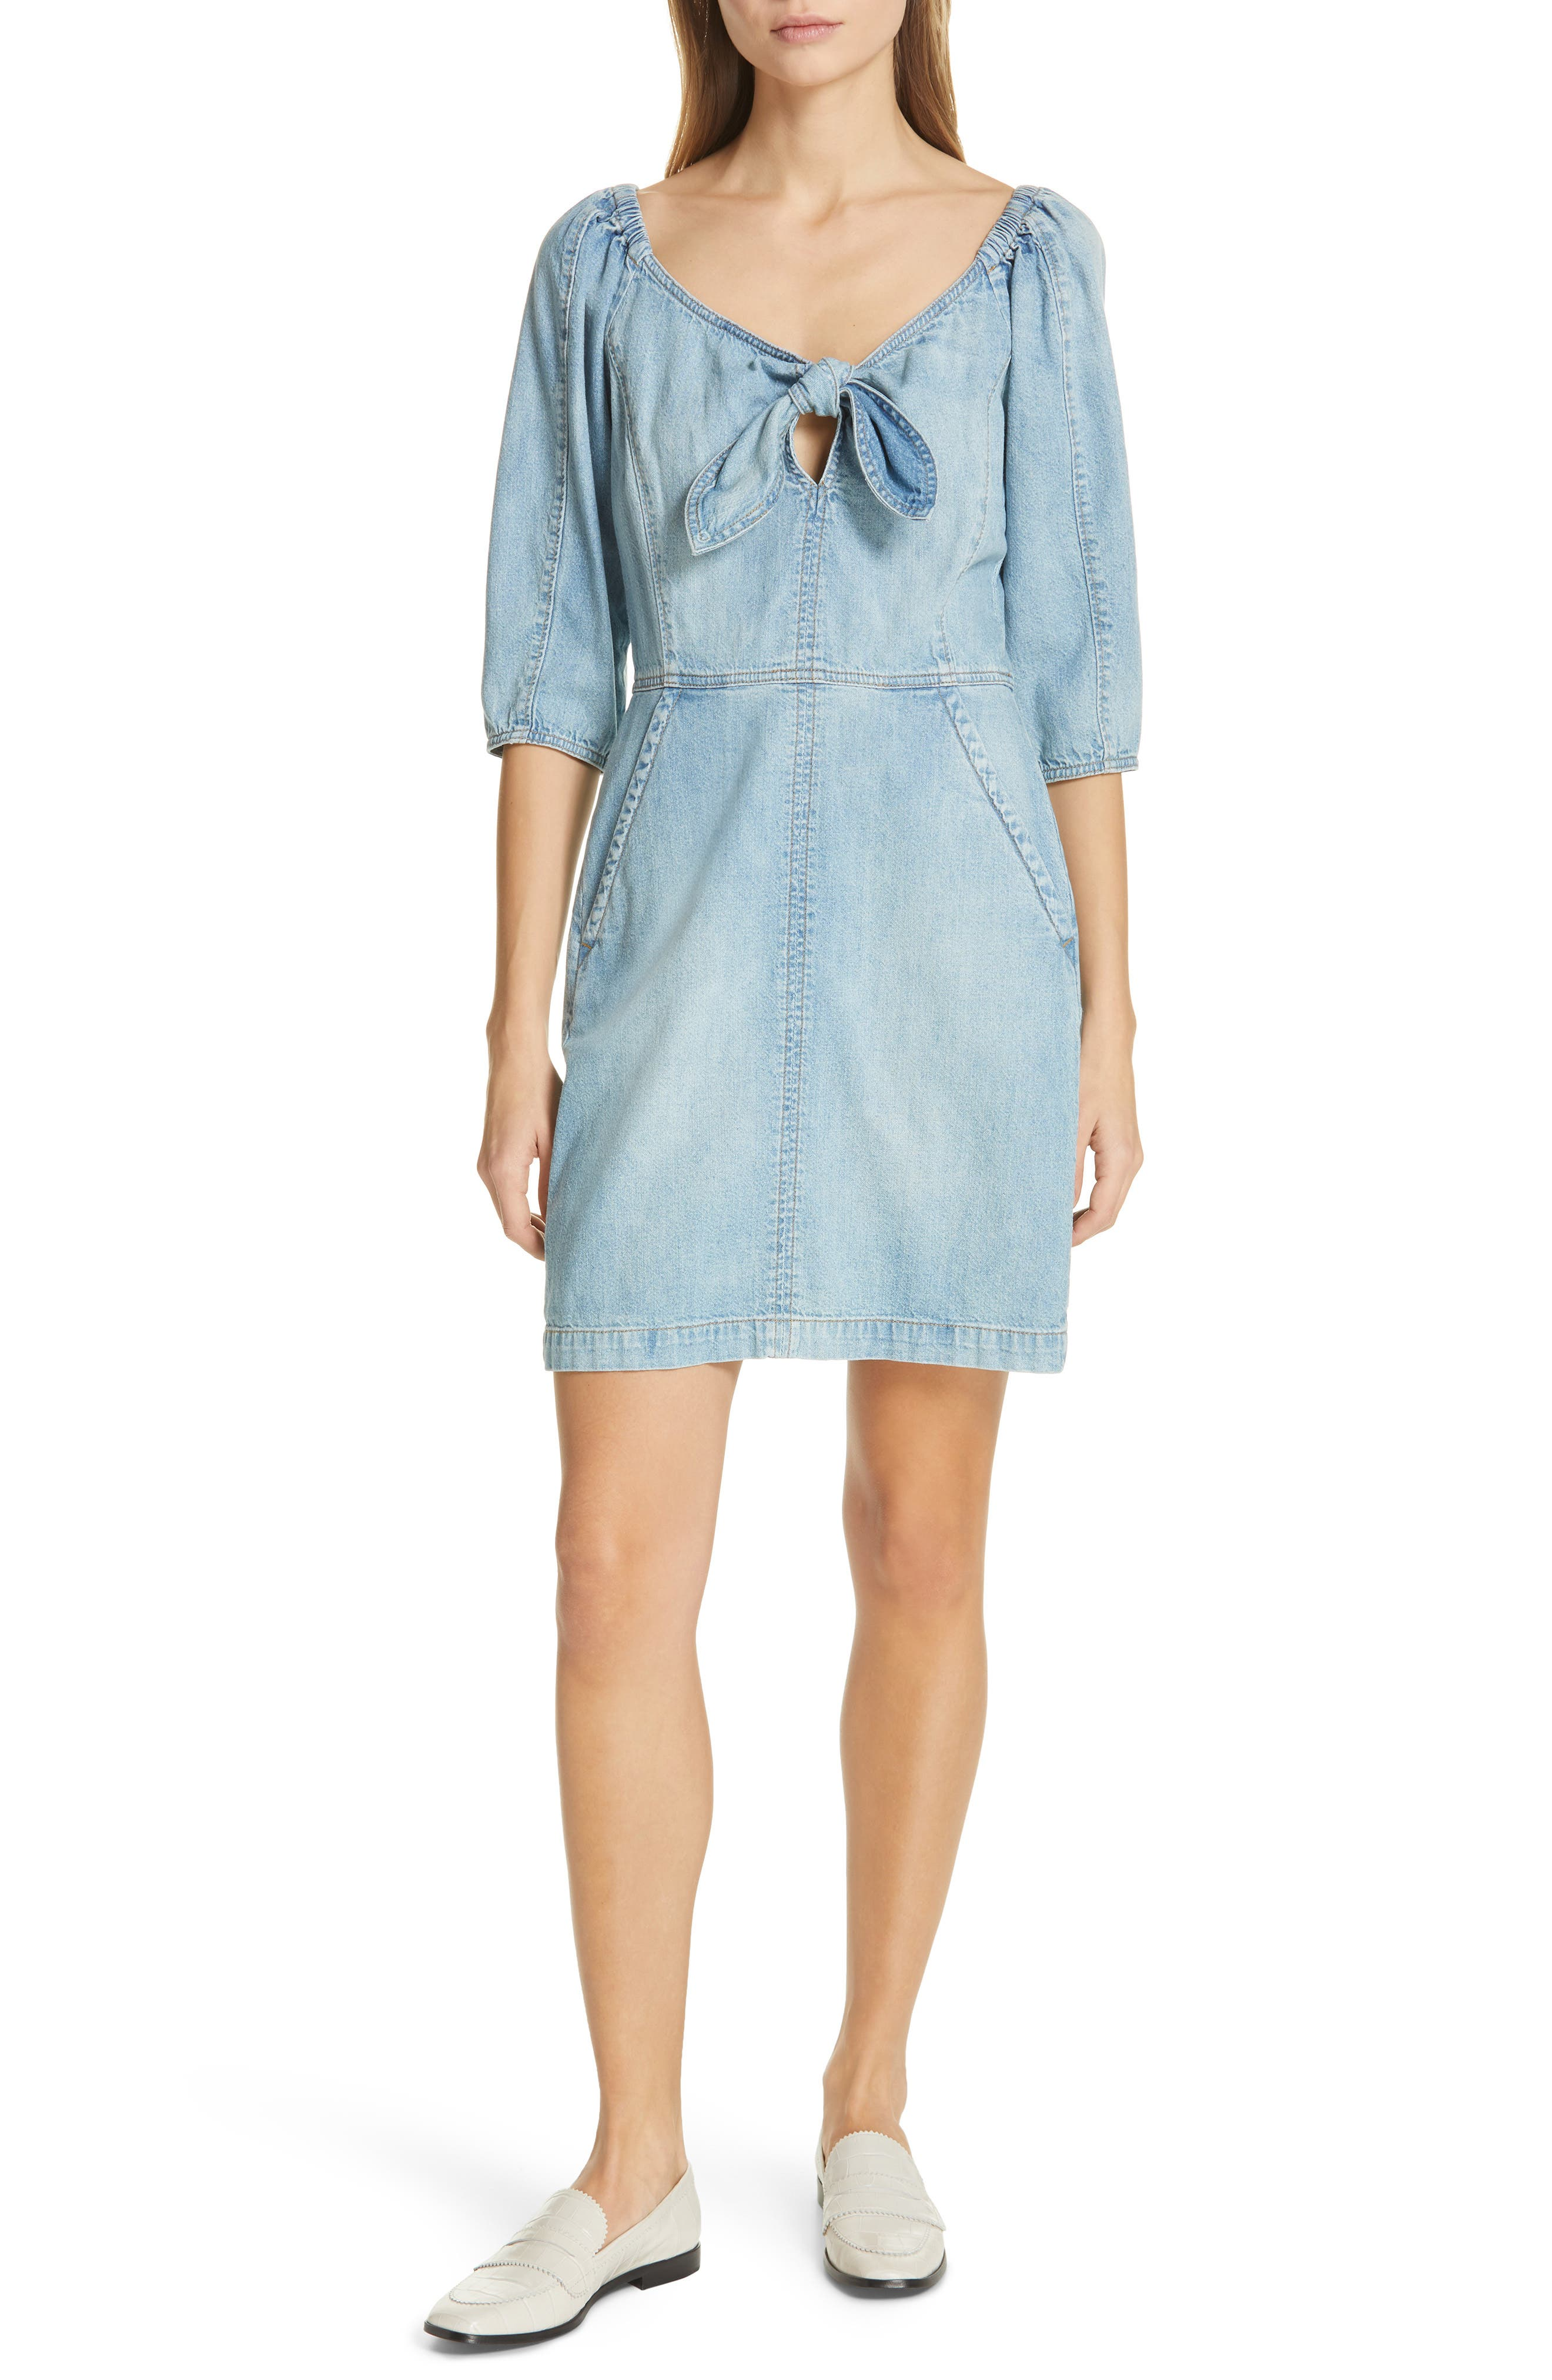 LA VIE REBECCA TAYLOR, Tie Neck Denim Dress, Main thumbnail 1, color, FORGET ME NOT WASH